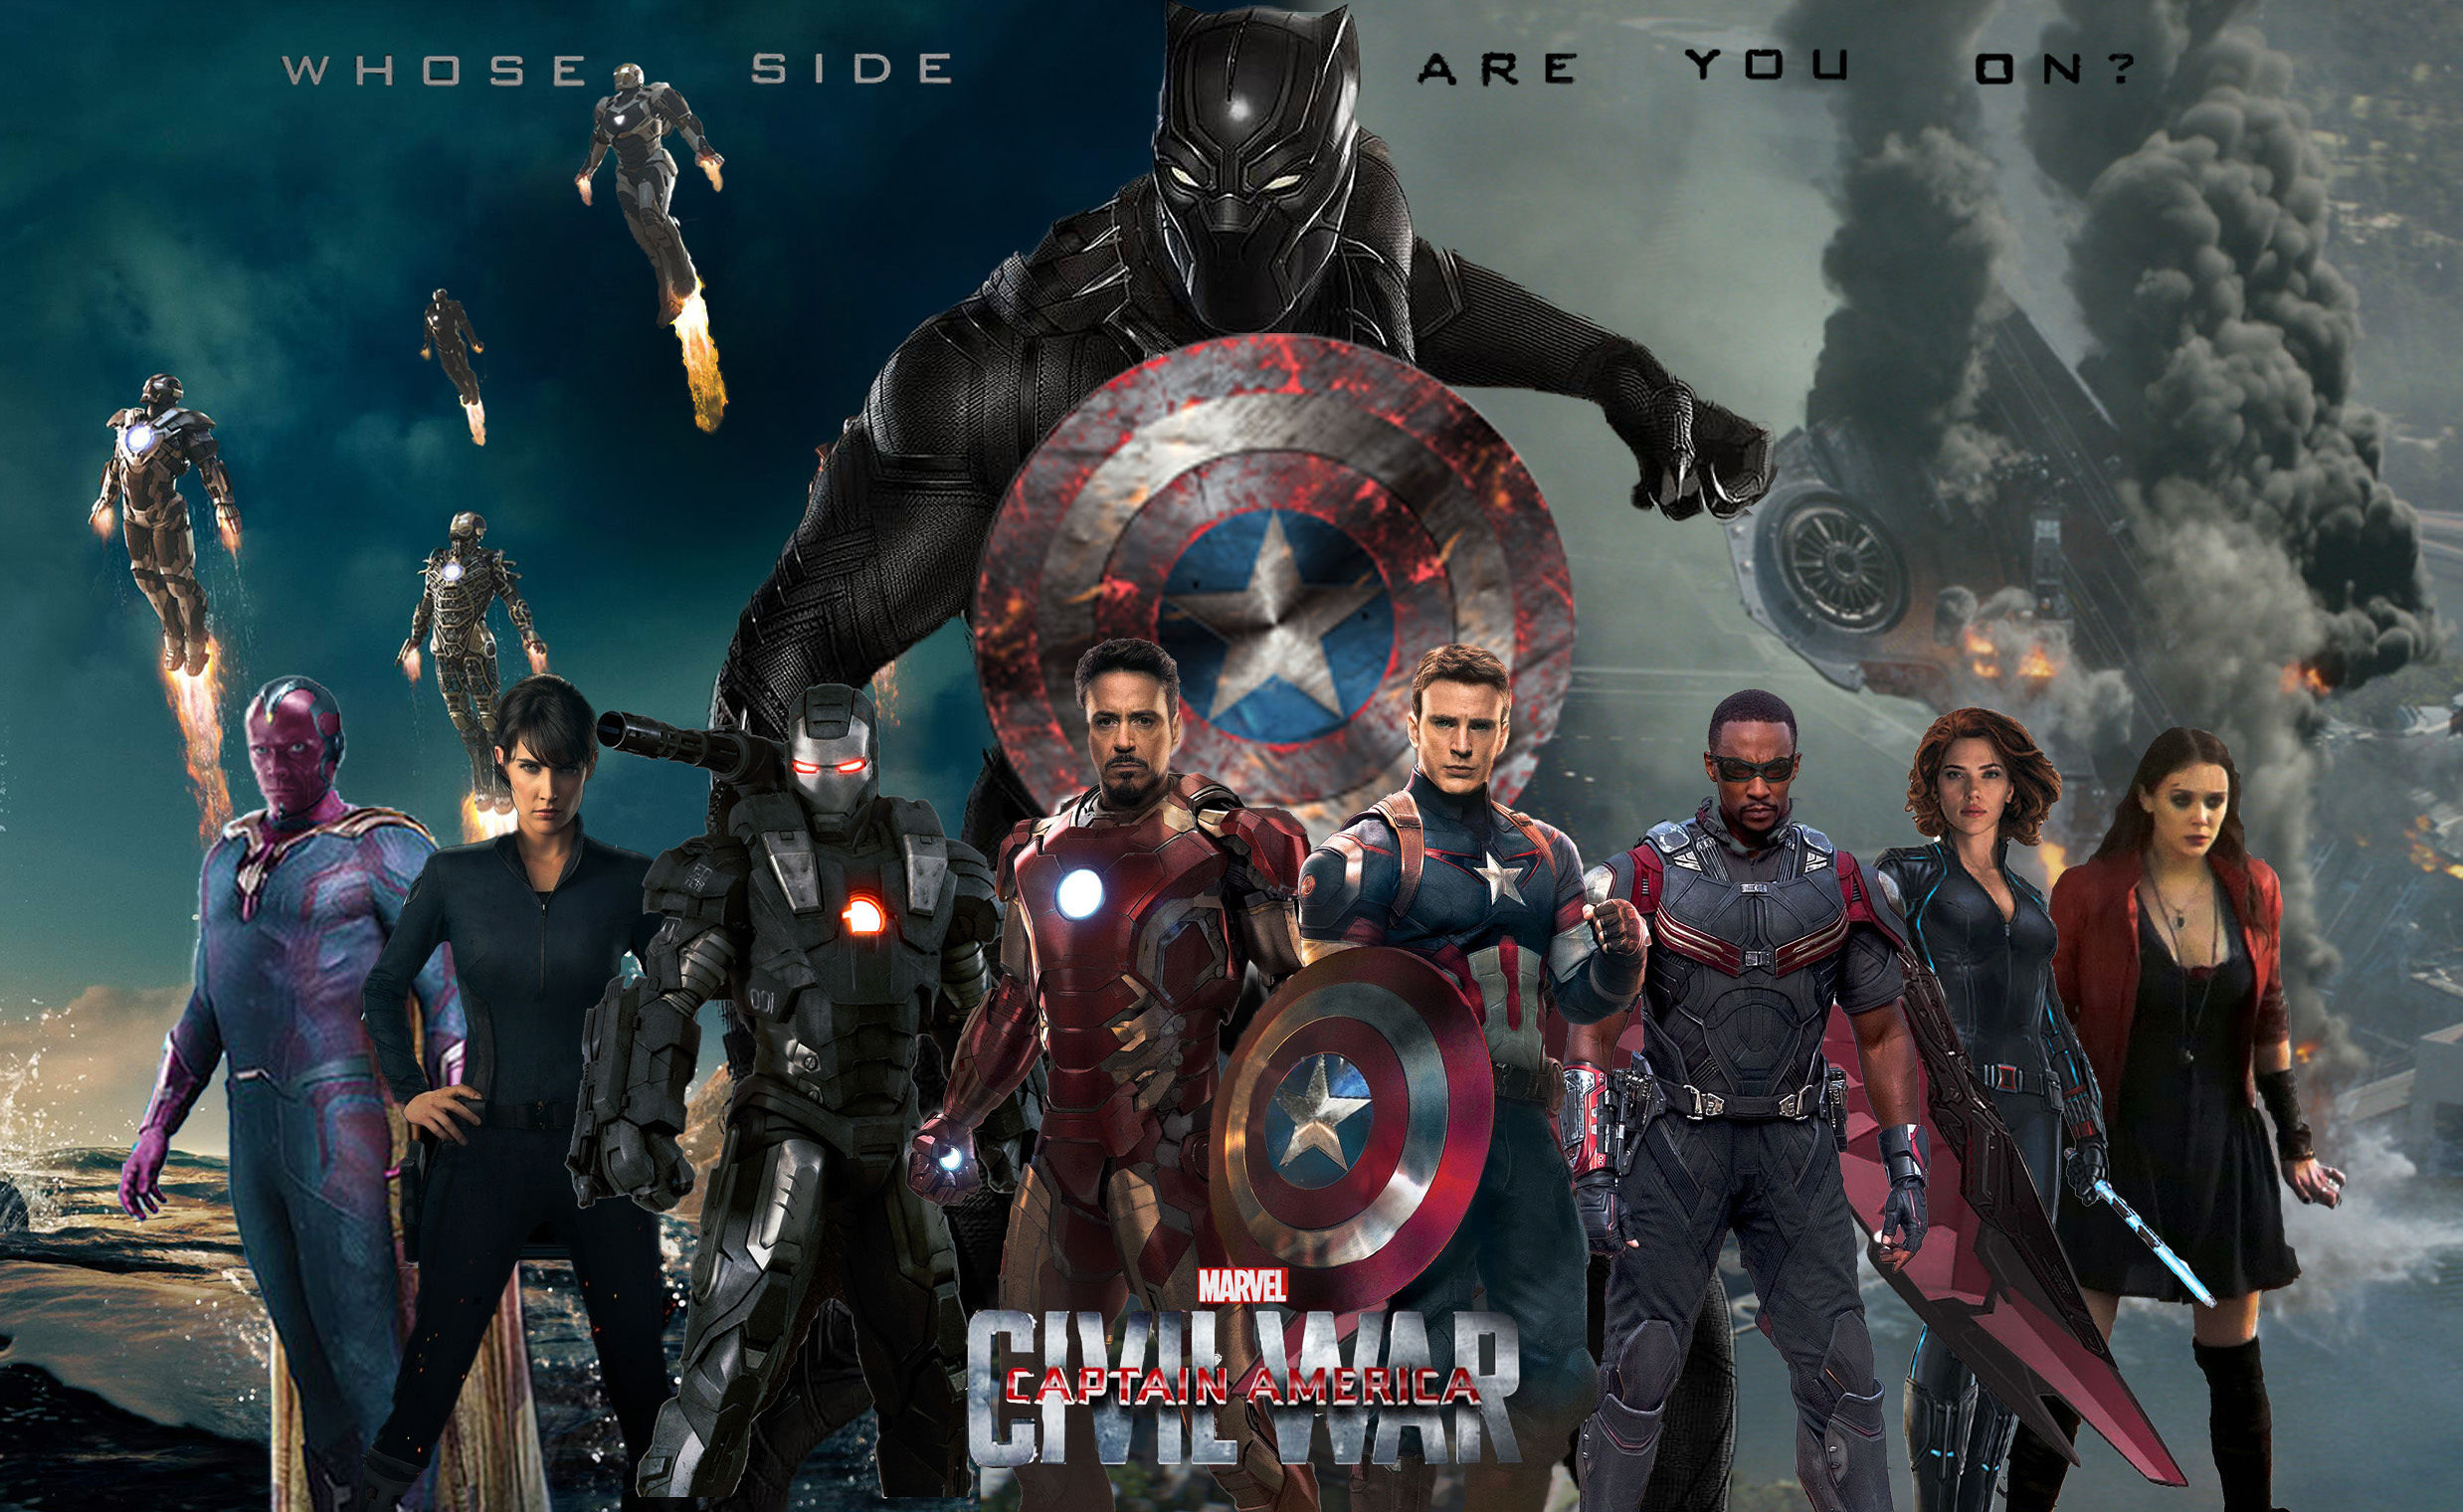 Captain America Civil War 2476x1520